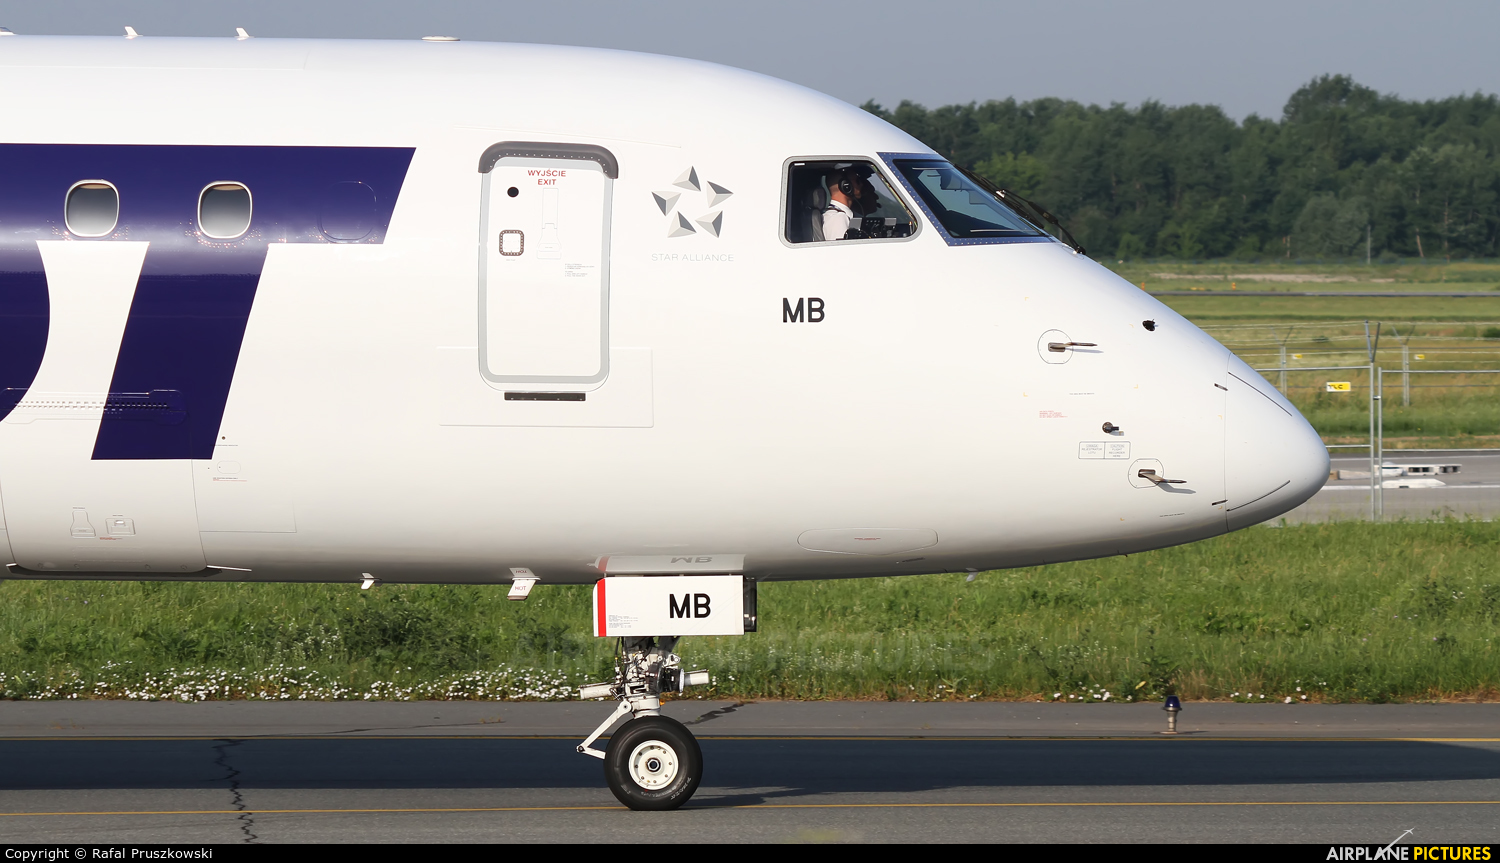 LOT - Polish Airlines SP-LMB aircraft at Warsaw - Frederic Chopin